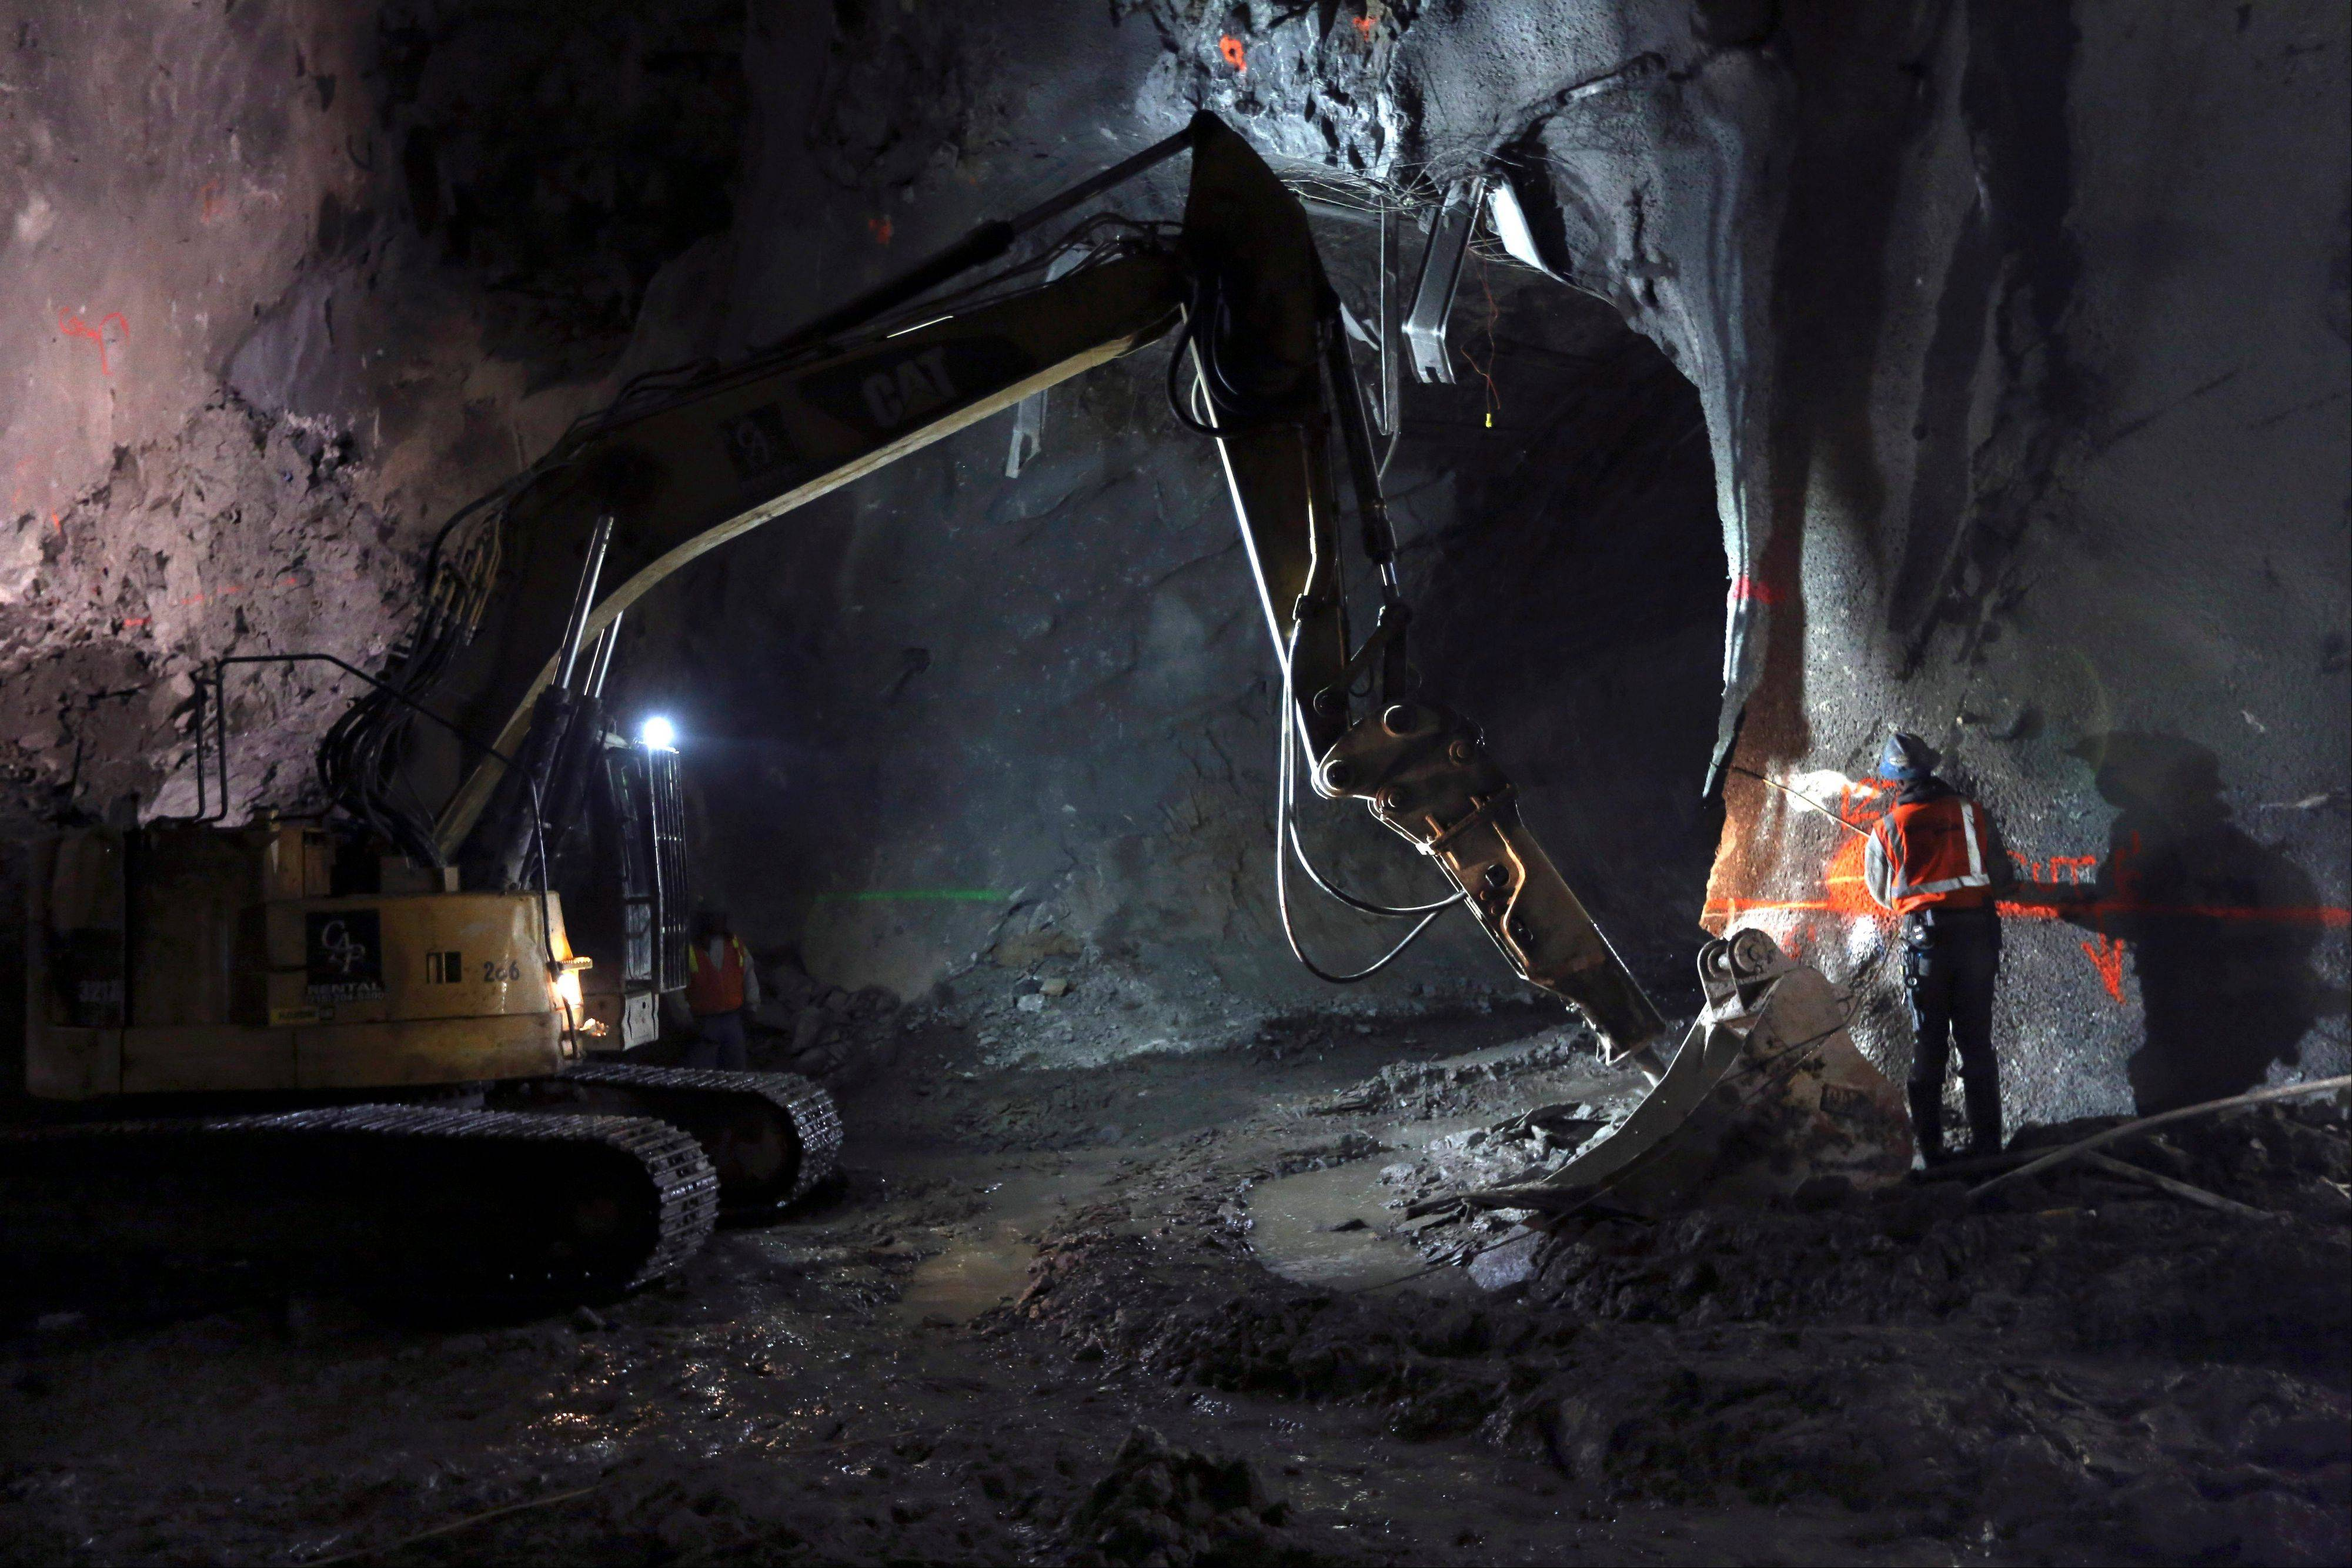 Contractors work on the East Side Access project beneath midtown Manhattan, in New York.